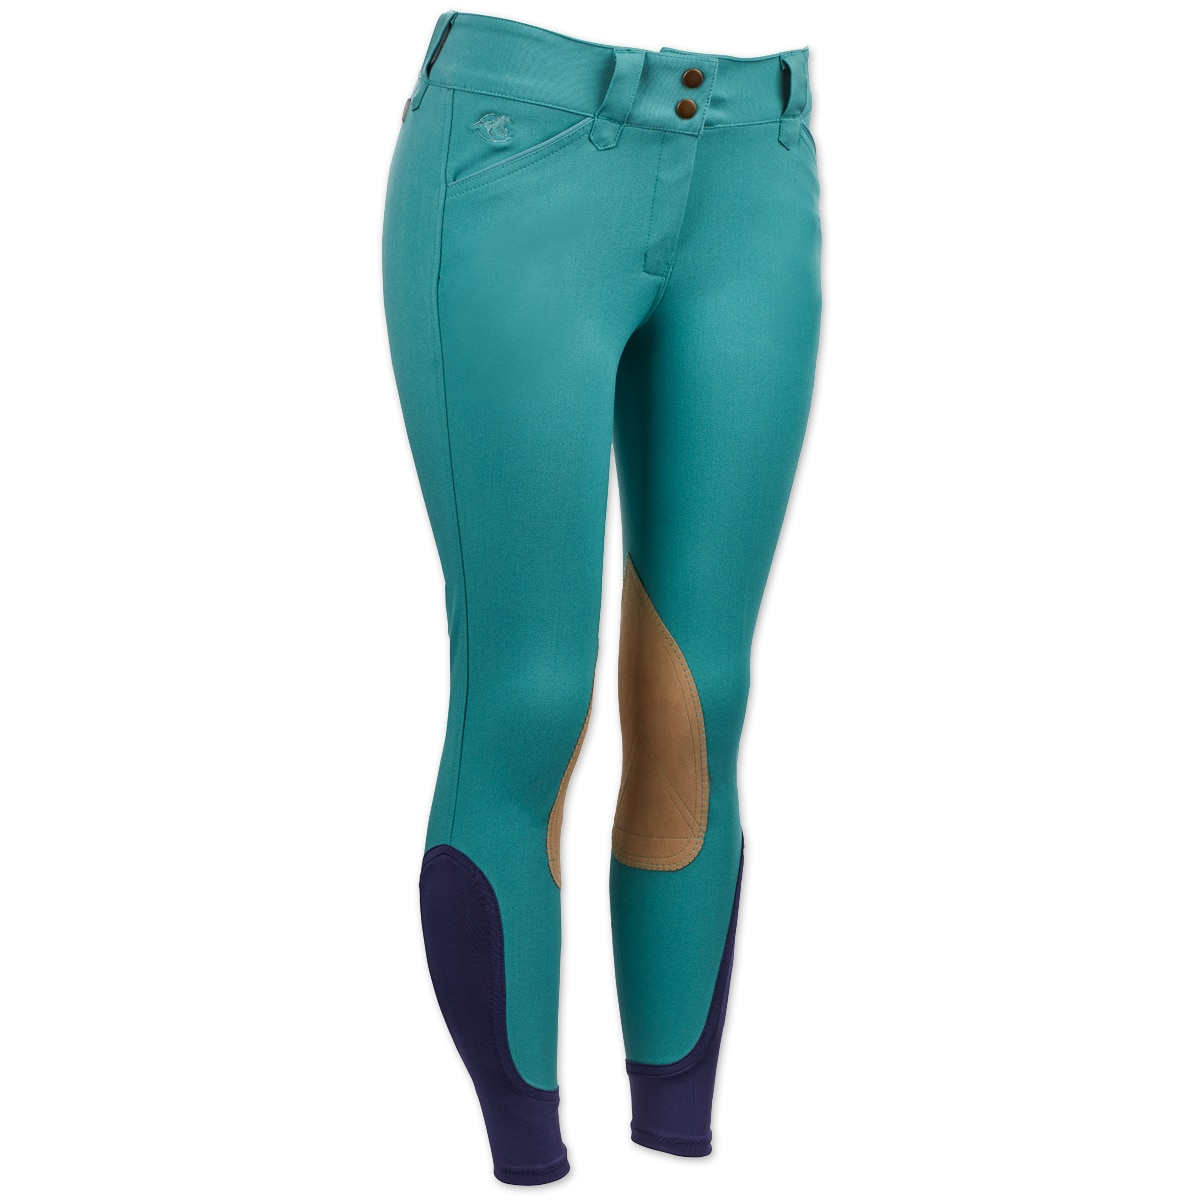 Piper Breeches by SmartPak - Tan Knee Patch - Clearance!